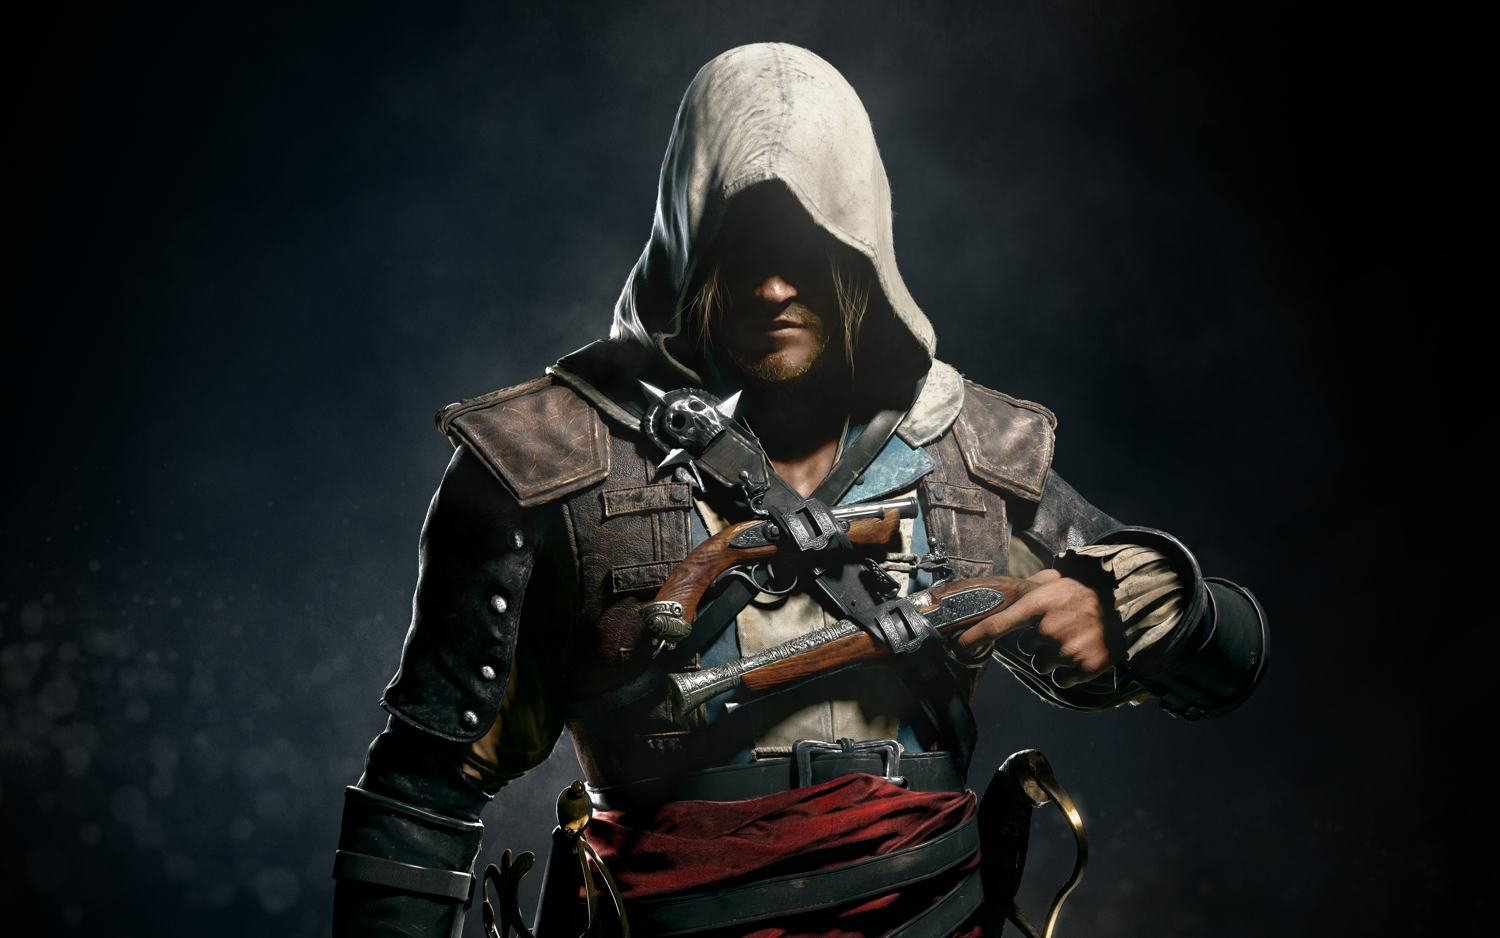 Assassin's Creed 4: Black Flag aims to refresh the formula